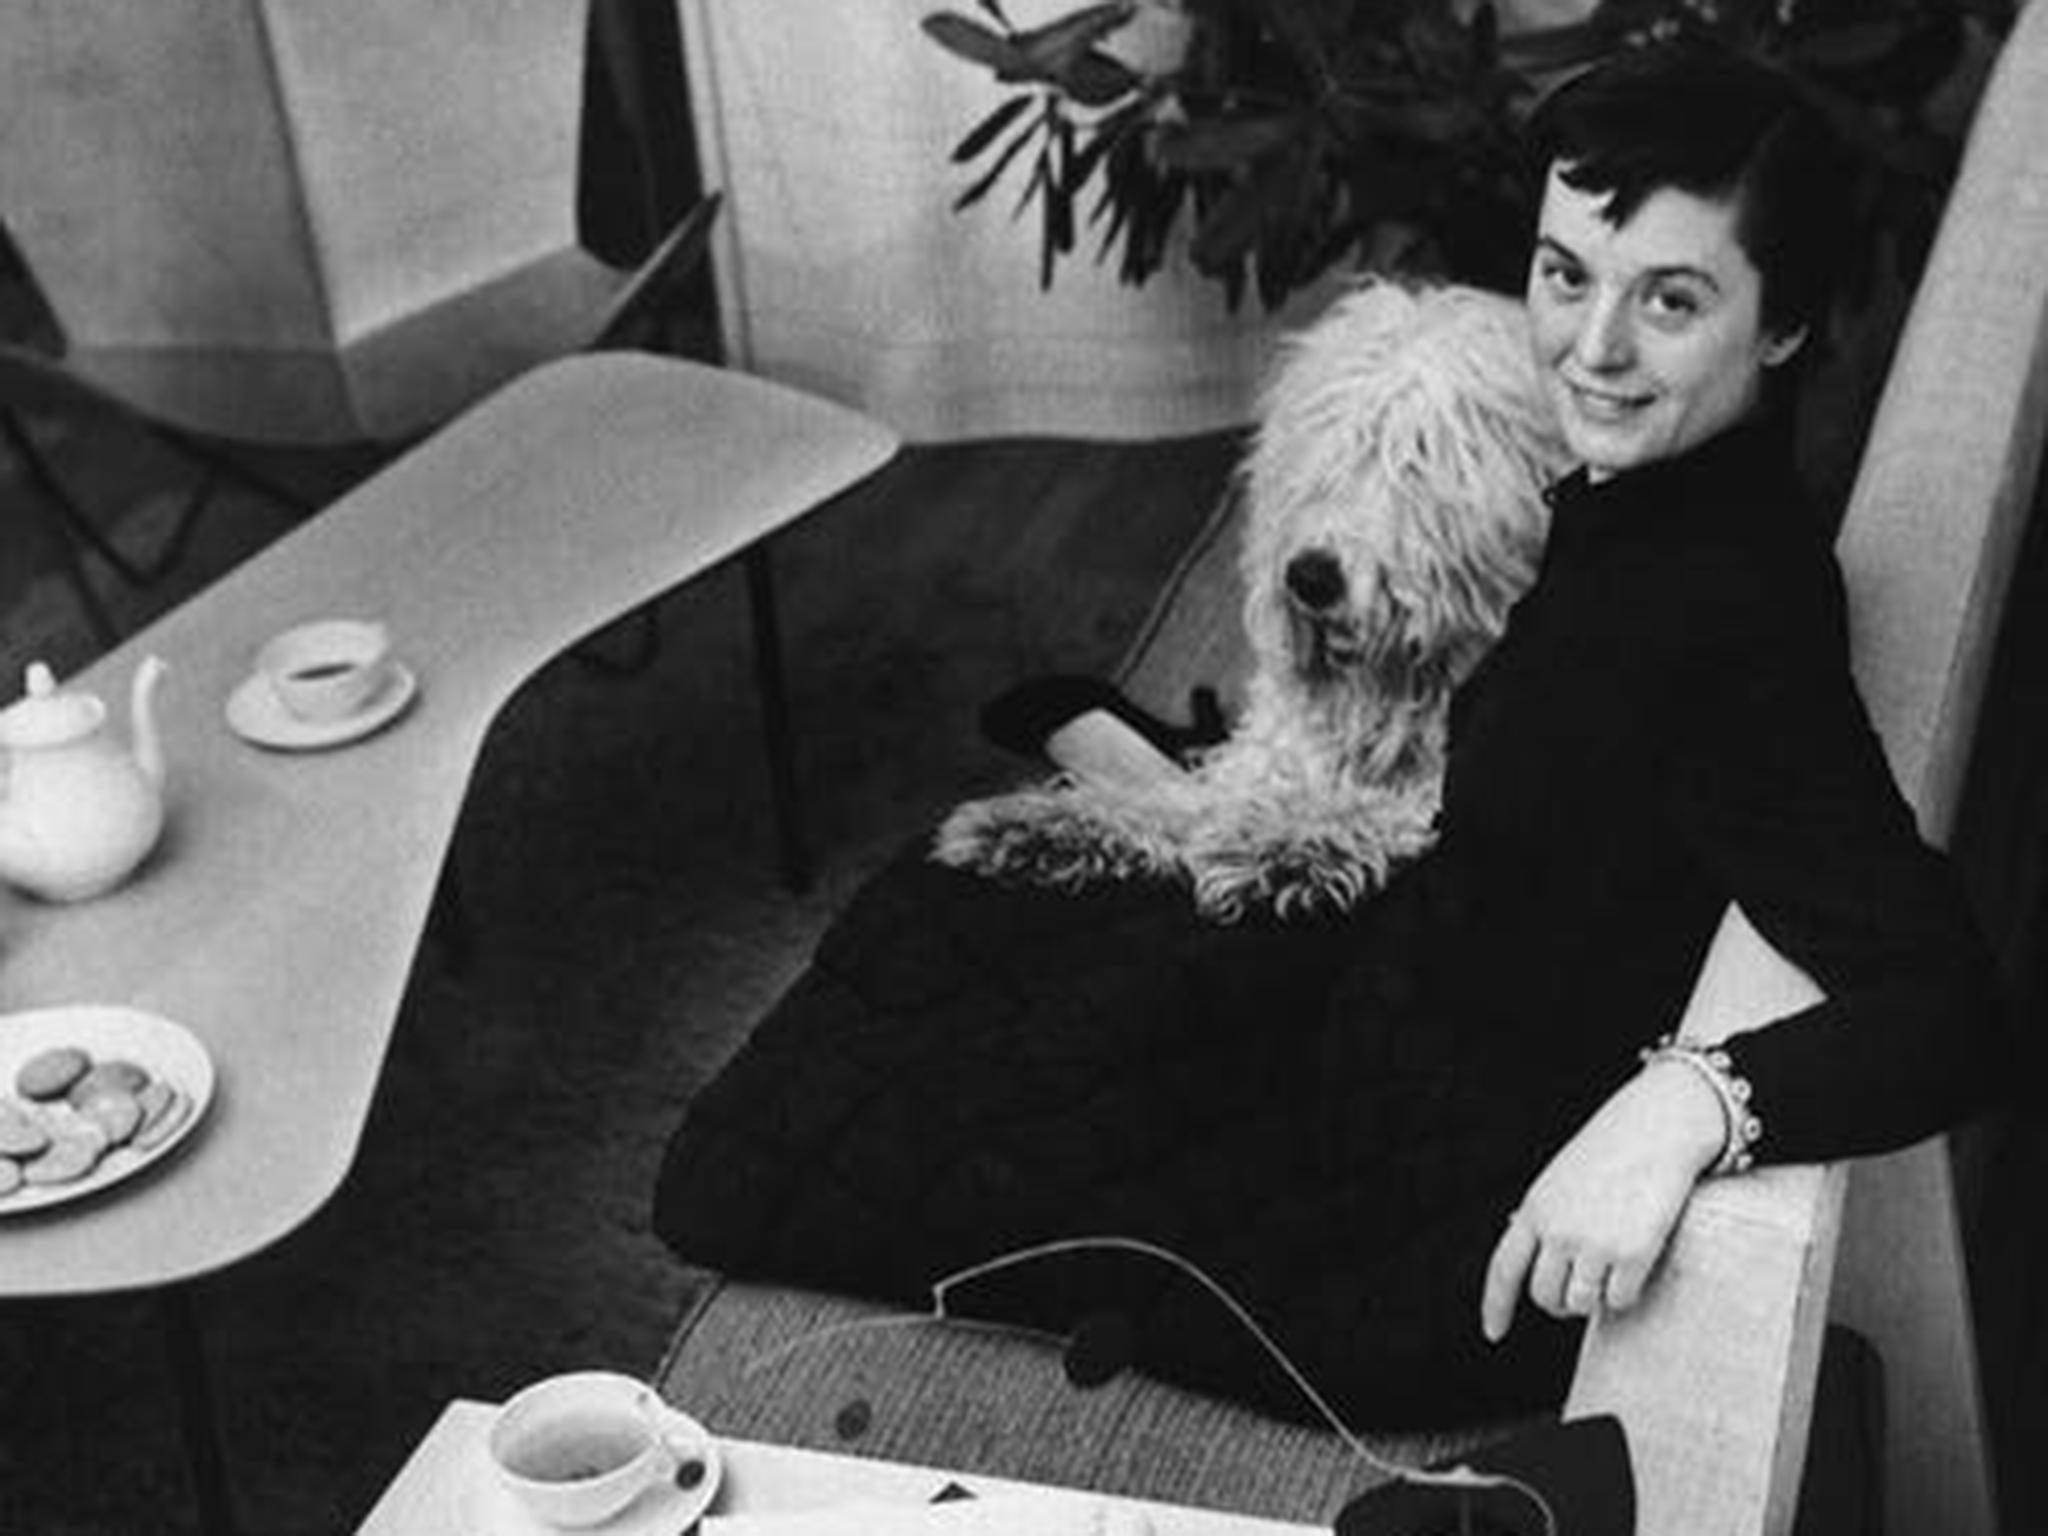 Florence Knoll Bassett was a US diplomat... through her revolutionary office designs